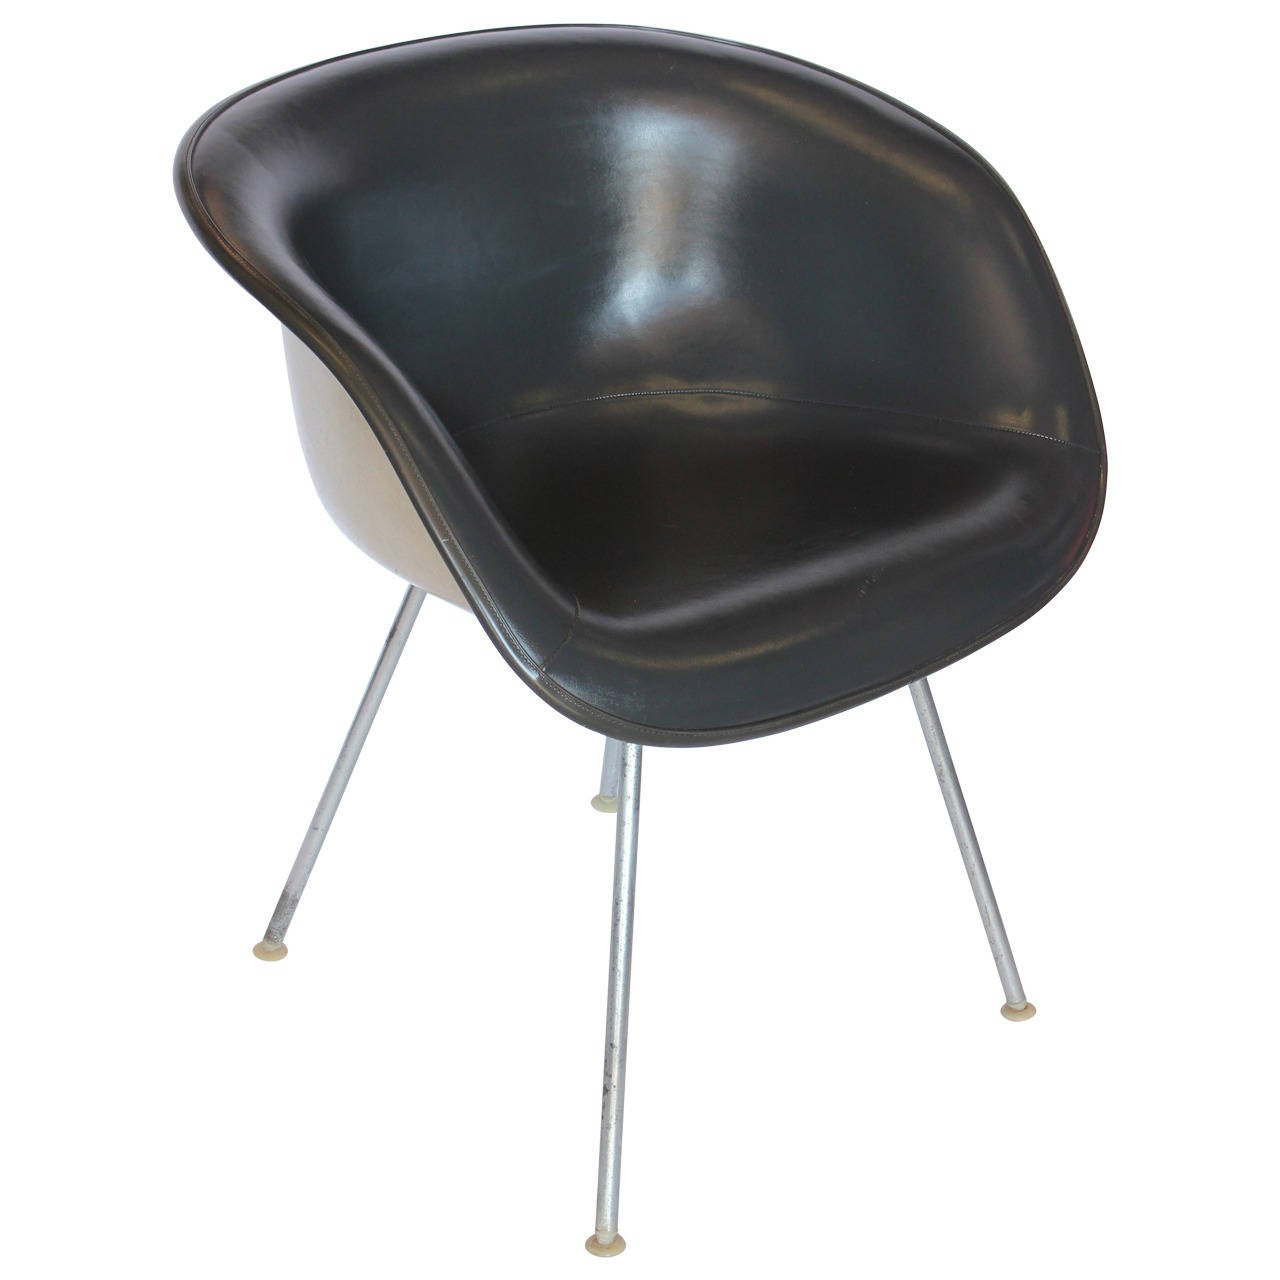 Eames Grey Naugahyde Chair By Herman Miller For Sale At